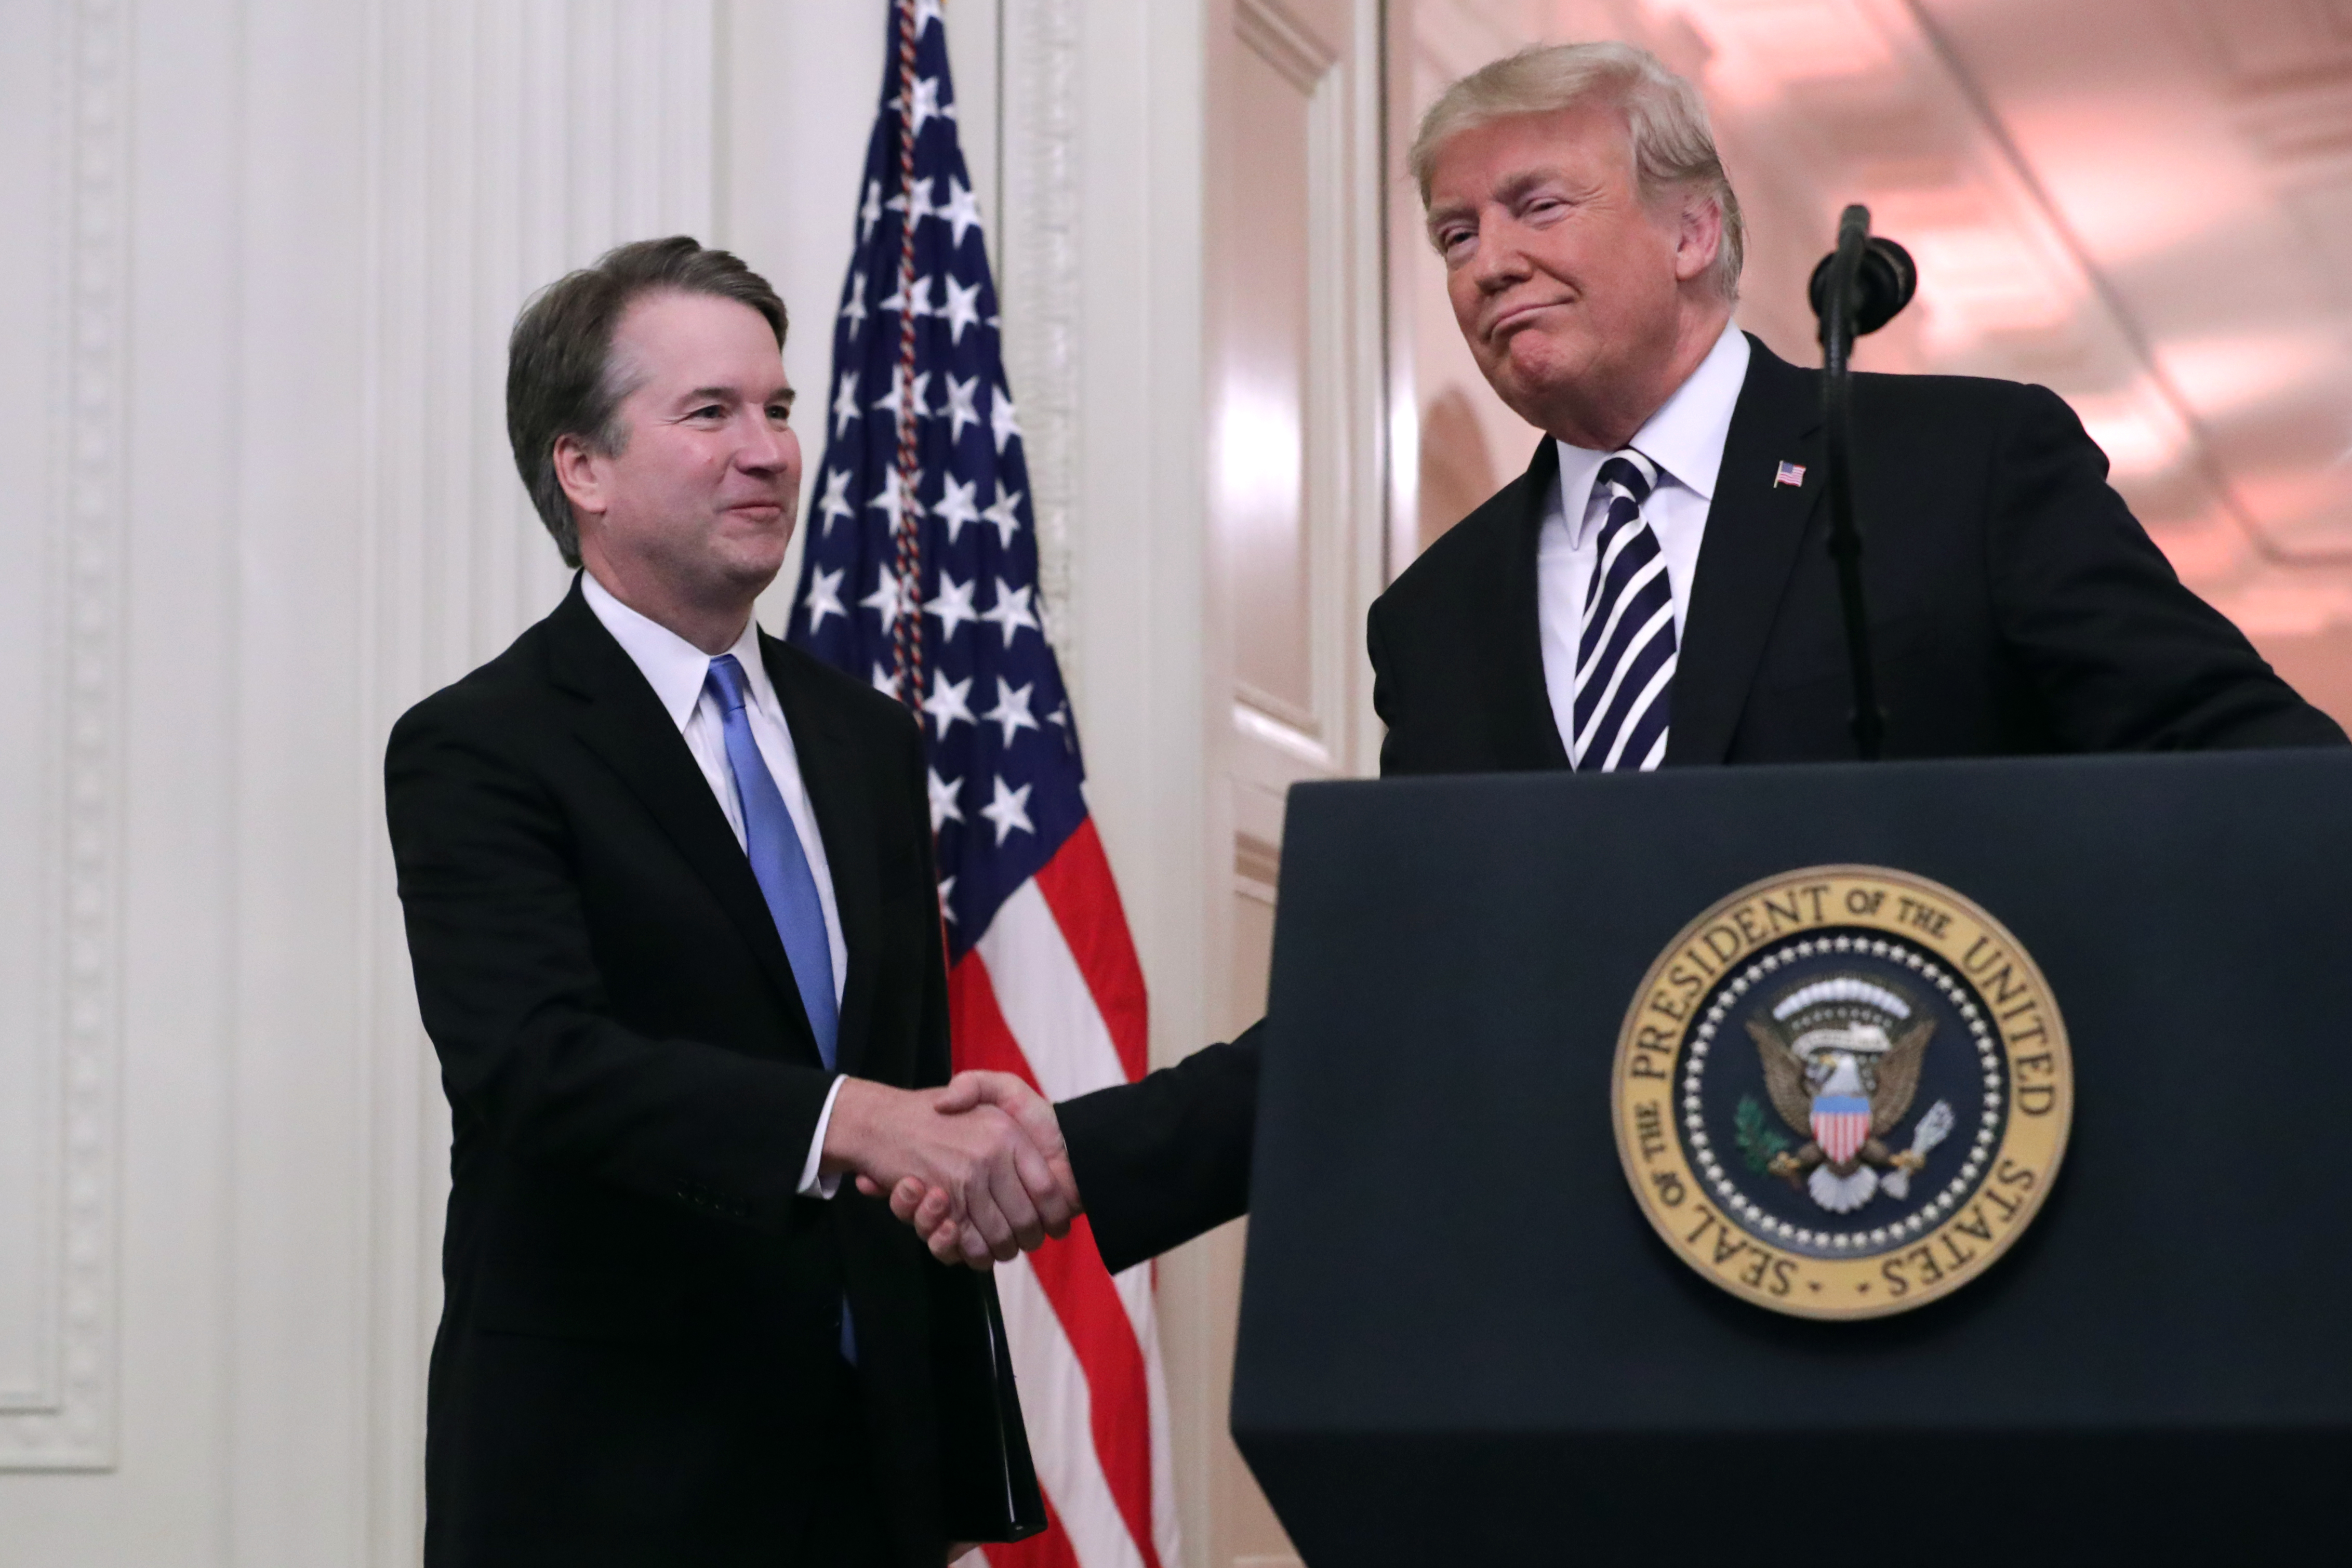 Justice Brett Kavanaugh shakes hands with President Donald Trump at the White House on October 8, 2018. (Chip Somodevilla/Getty Images)